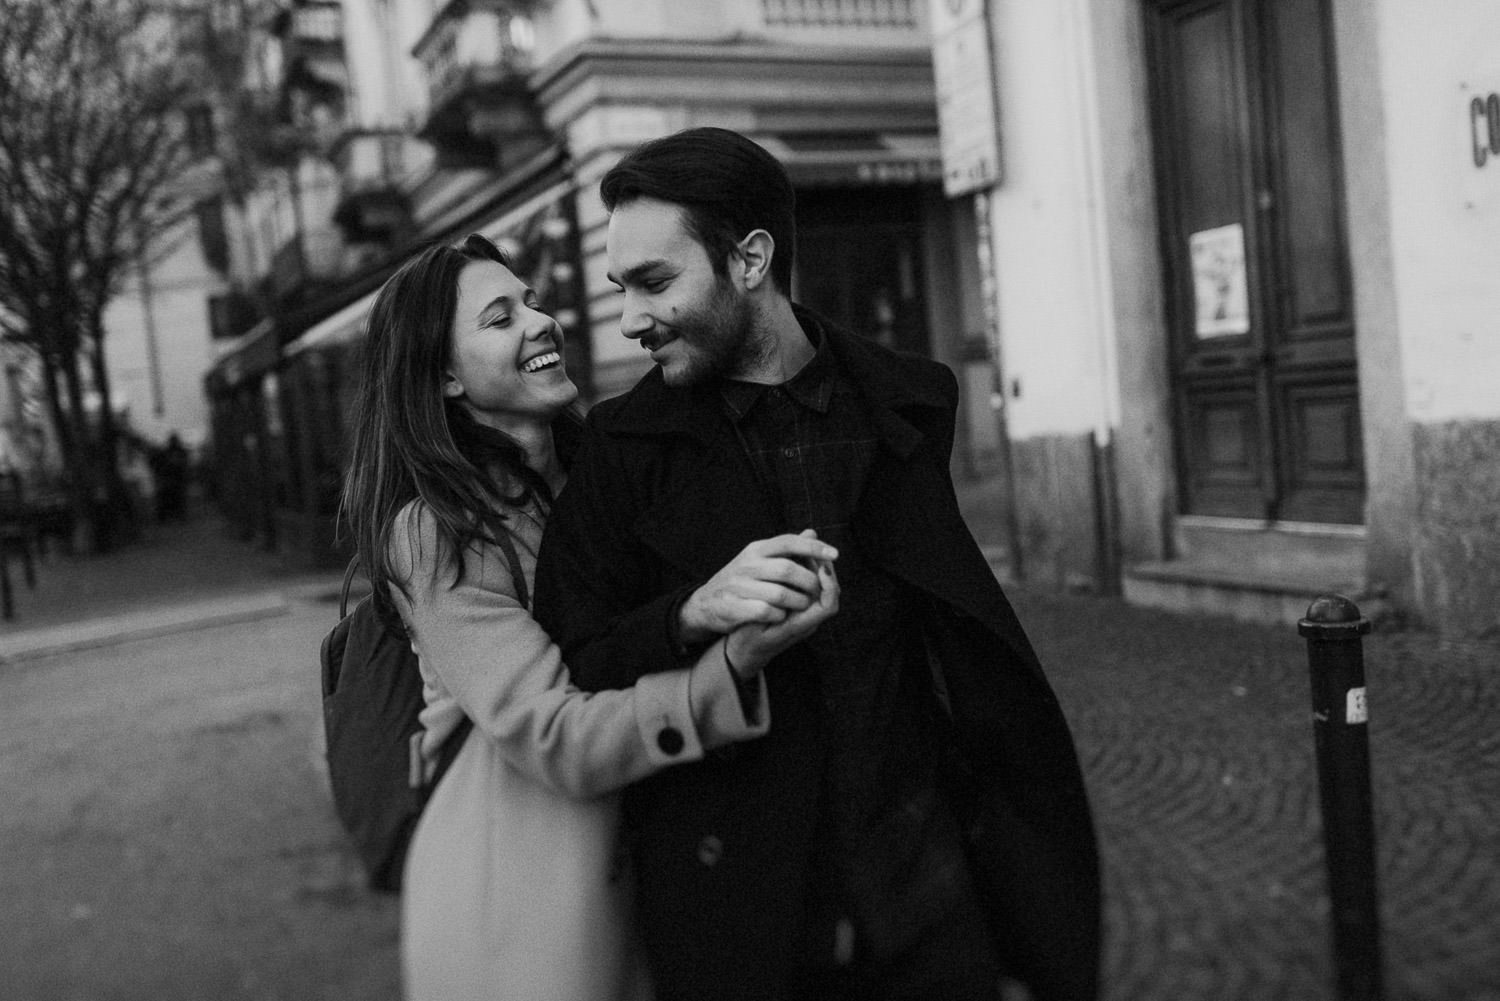 Lovers in Turin by Mauro Beoletto